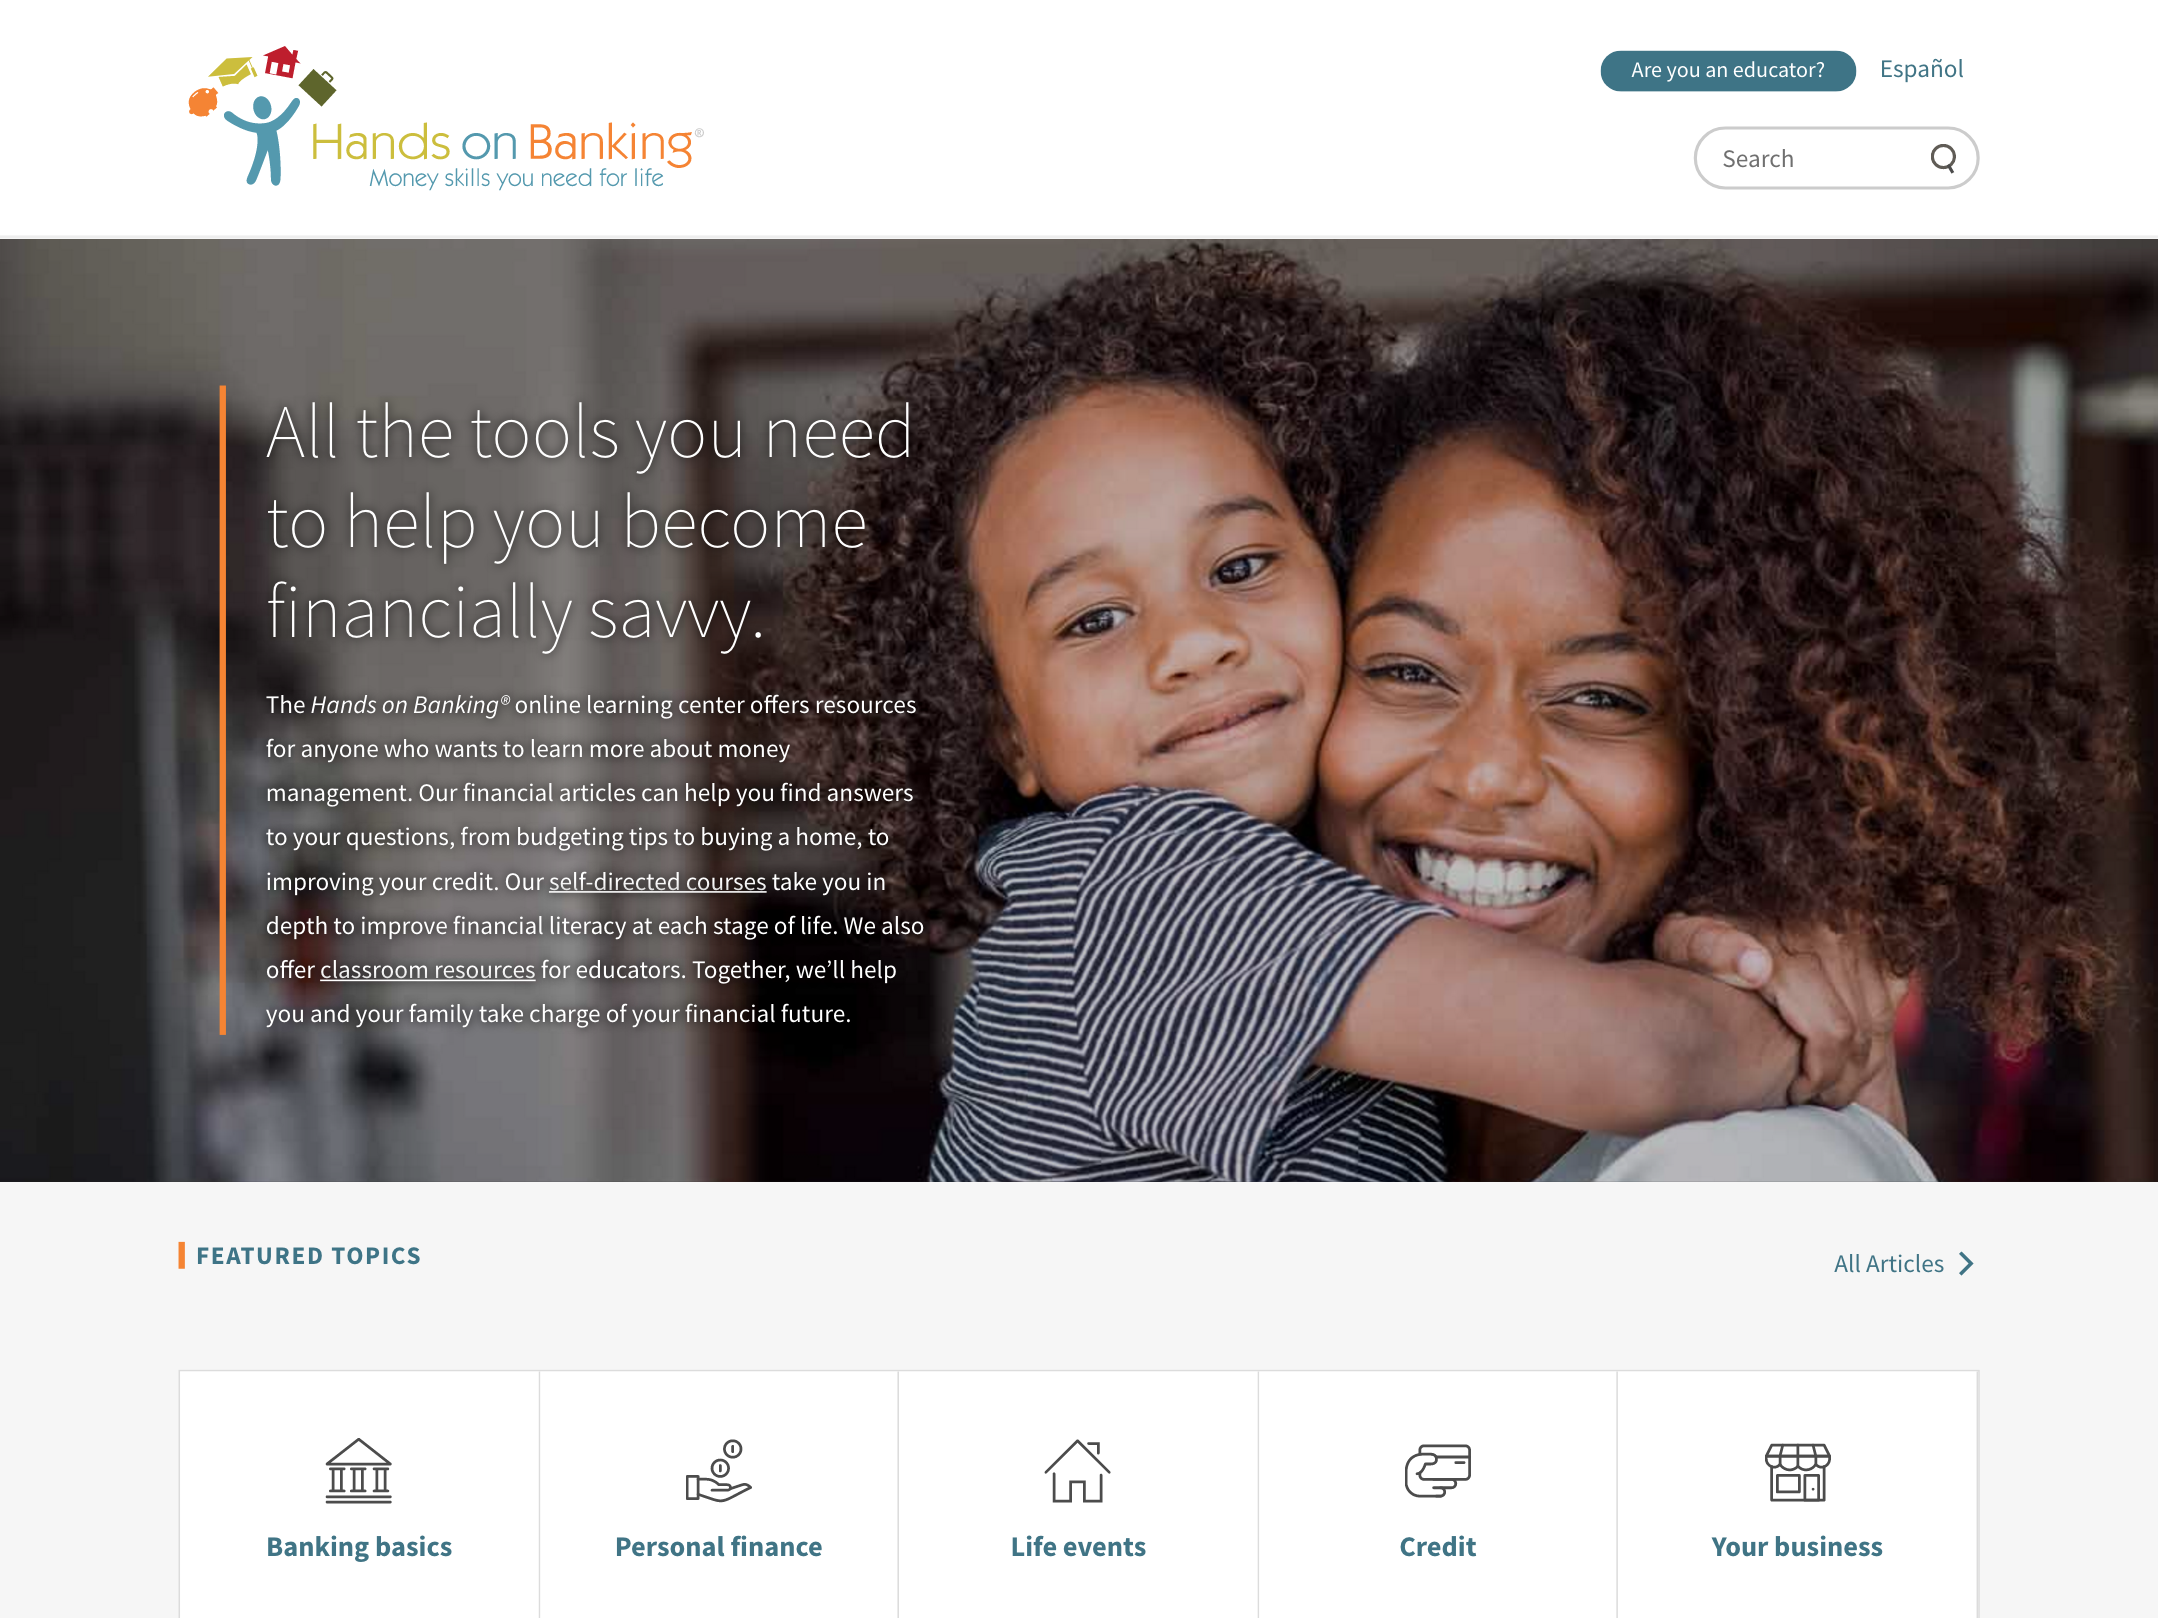 Wells Fargo - Hands on Banking home page